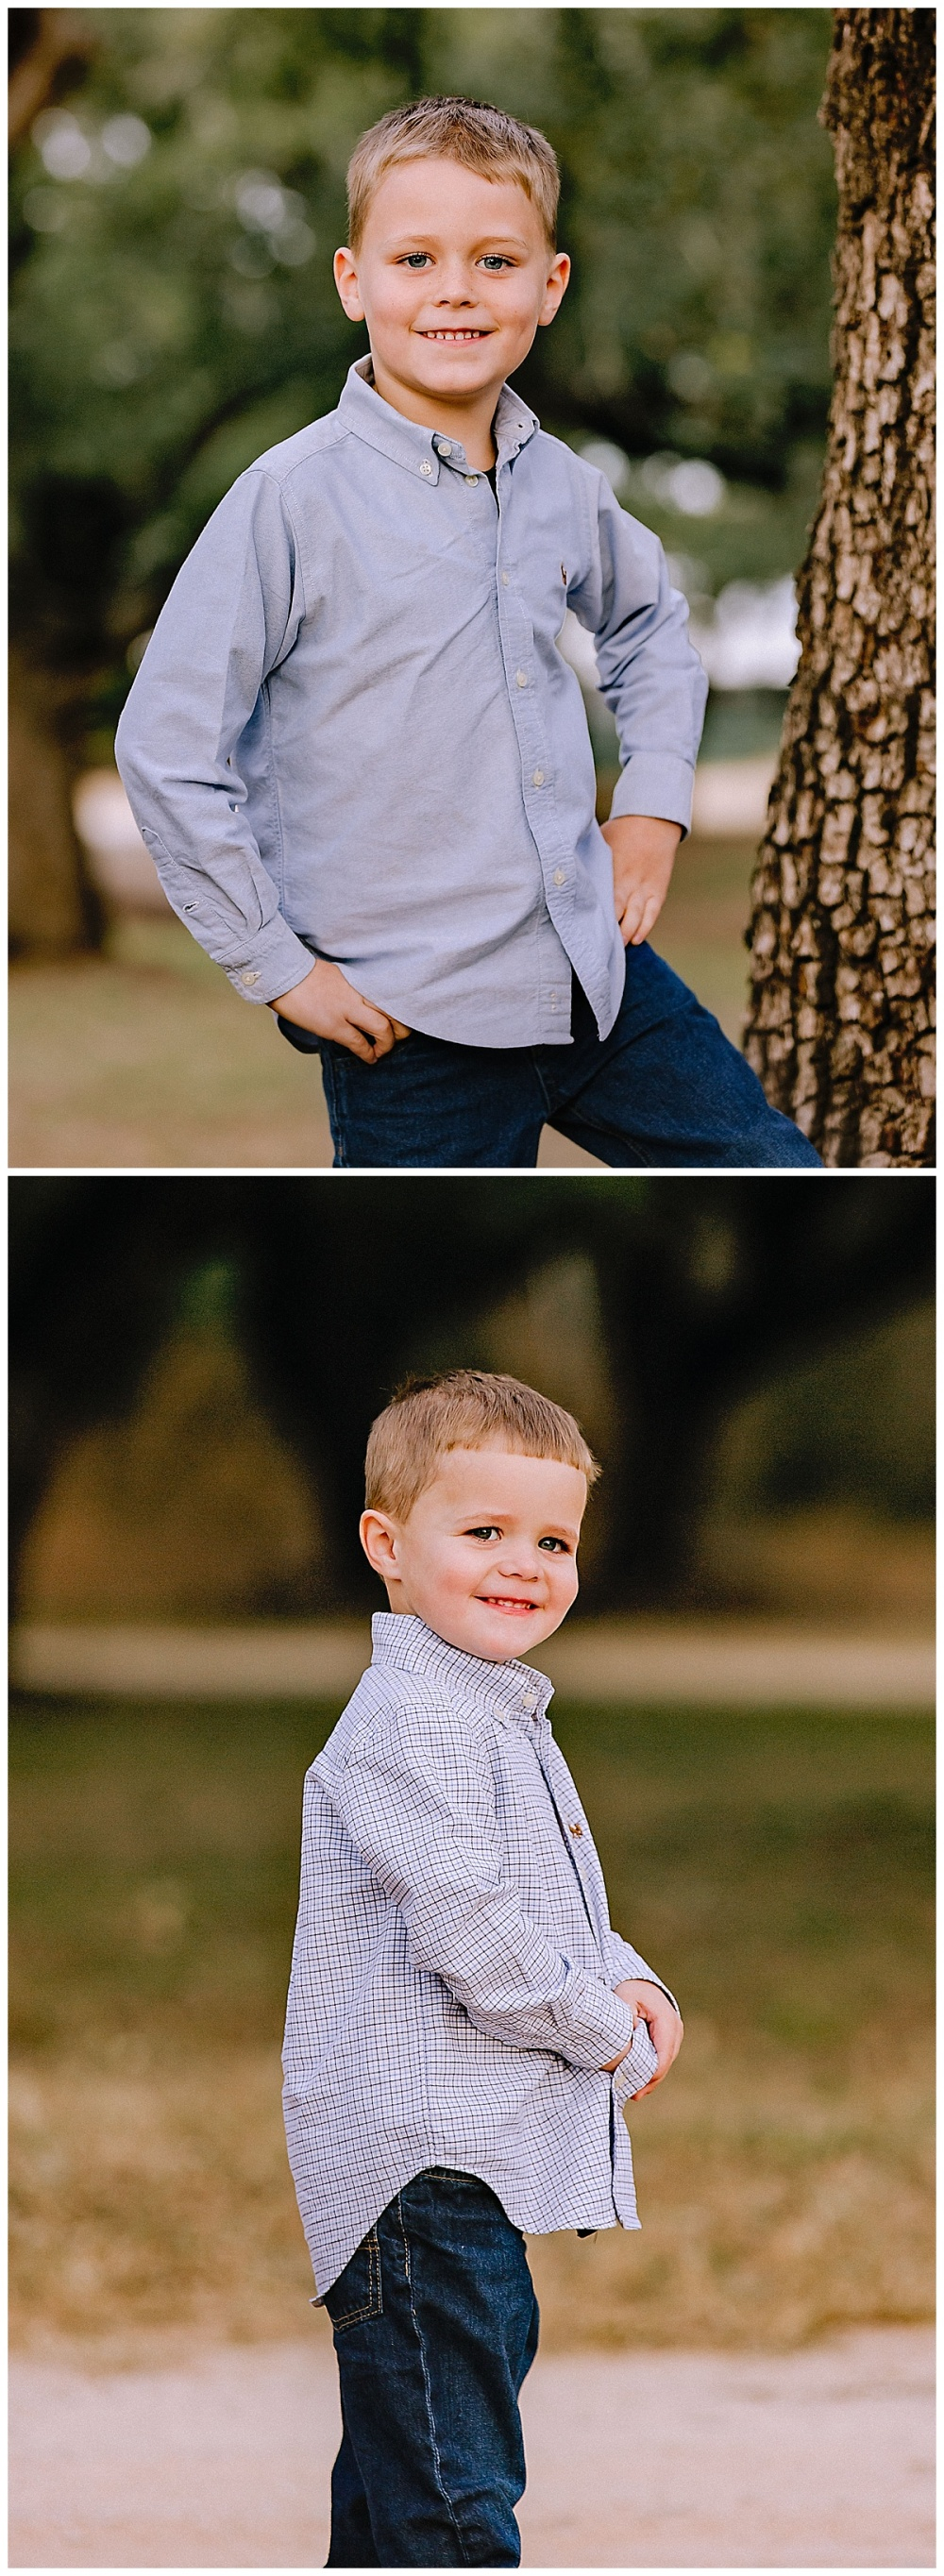 Family-Photographer-La-Vernia-Texas-LV-C-of-C-Hall-Fall-Photos-Brothers-Carly-Barton-Photography_0003.jpg